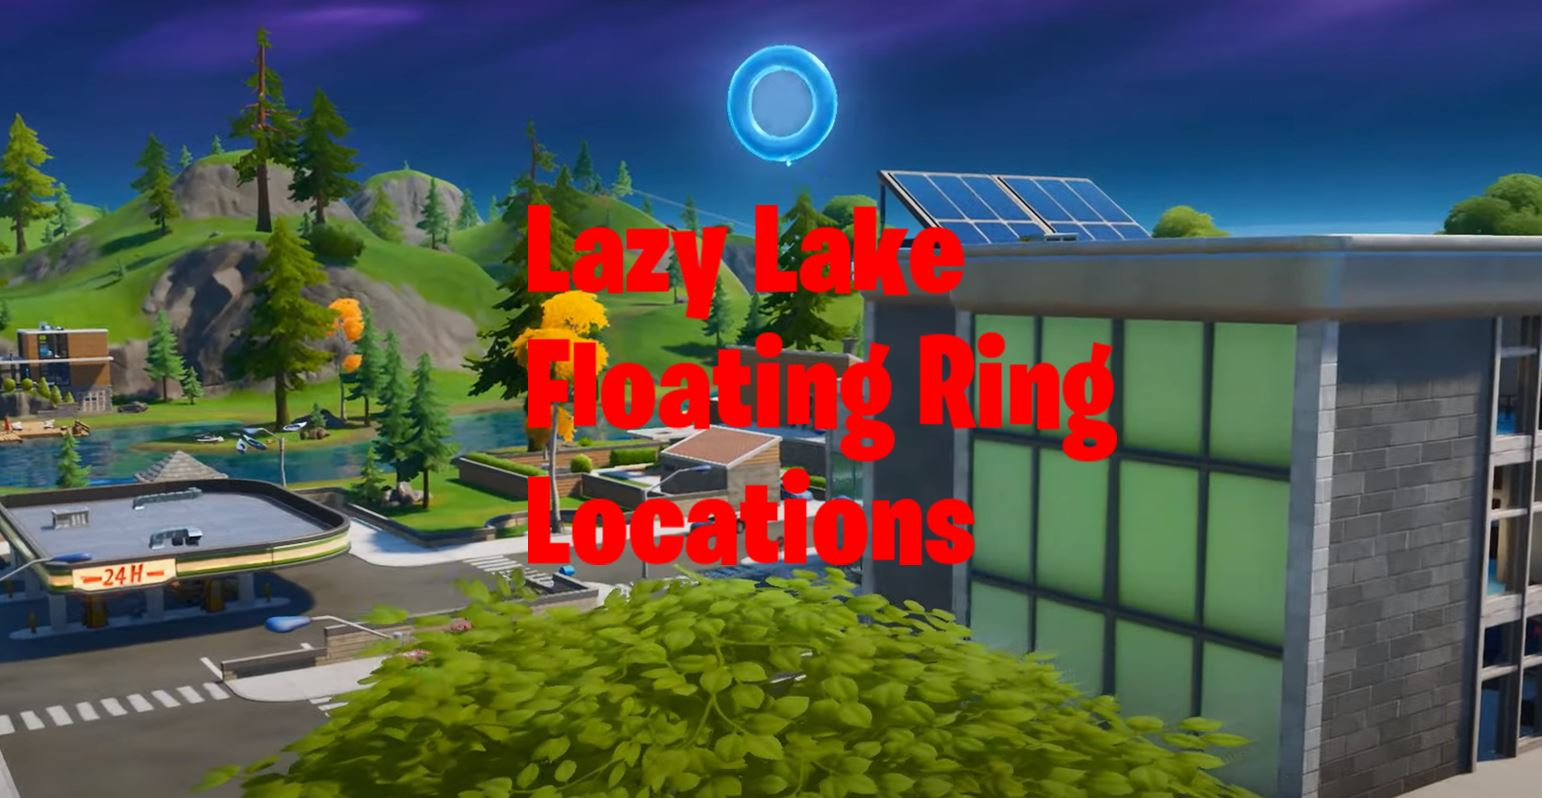 Collect Floating Rings in Lazy Lake Fortnite